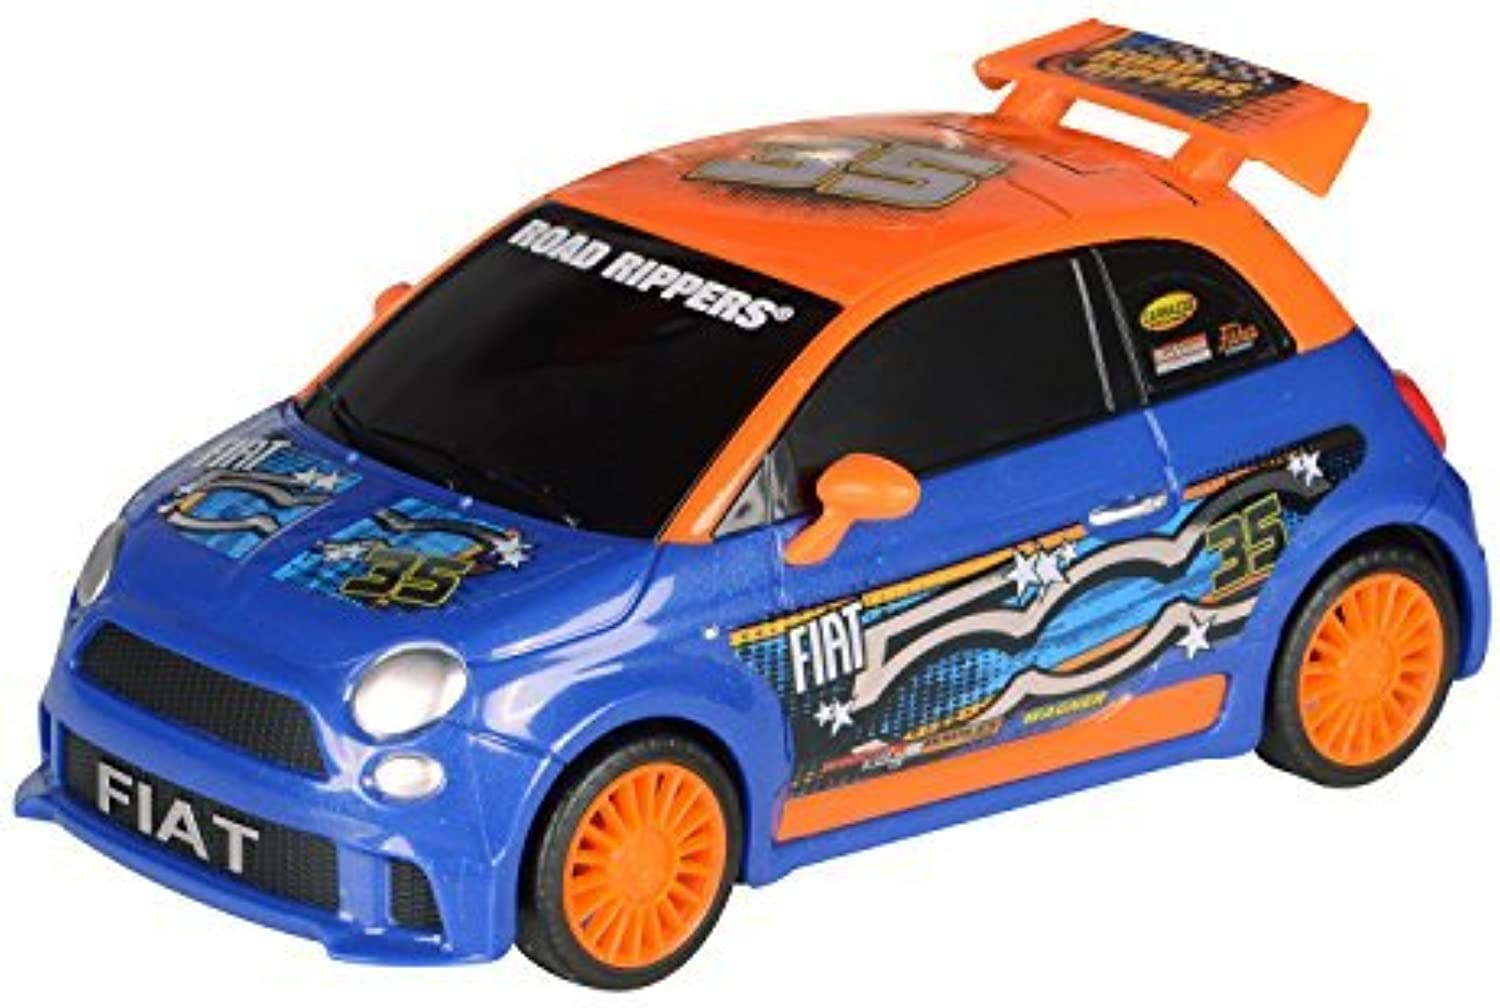 Toystate Road Rippers Light and Sound Hatchbacks Fiat 500 by Toystate